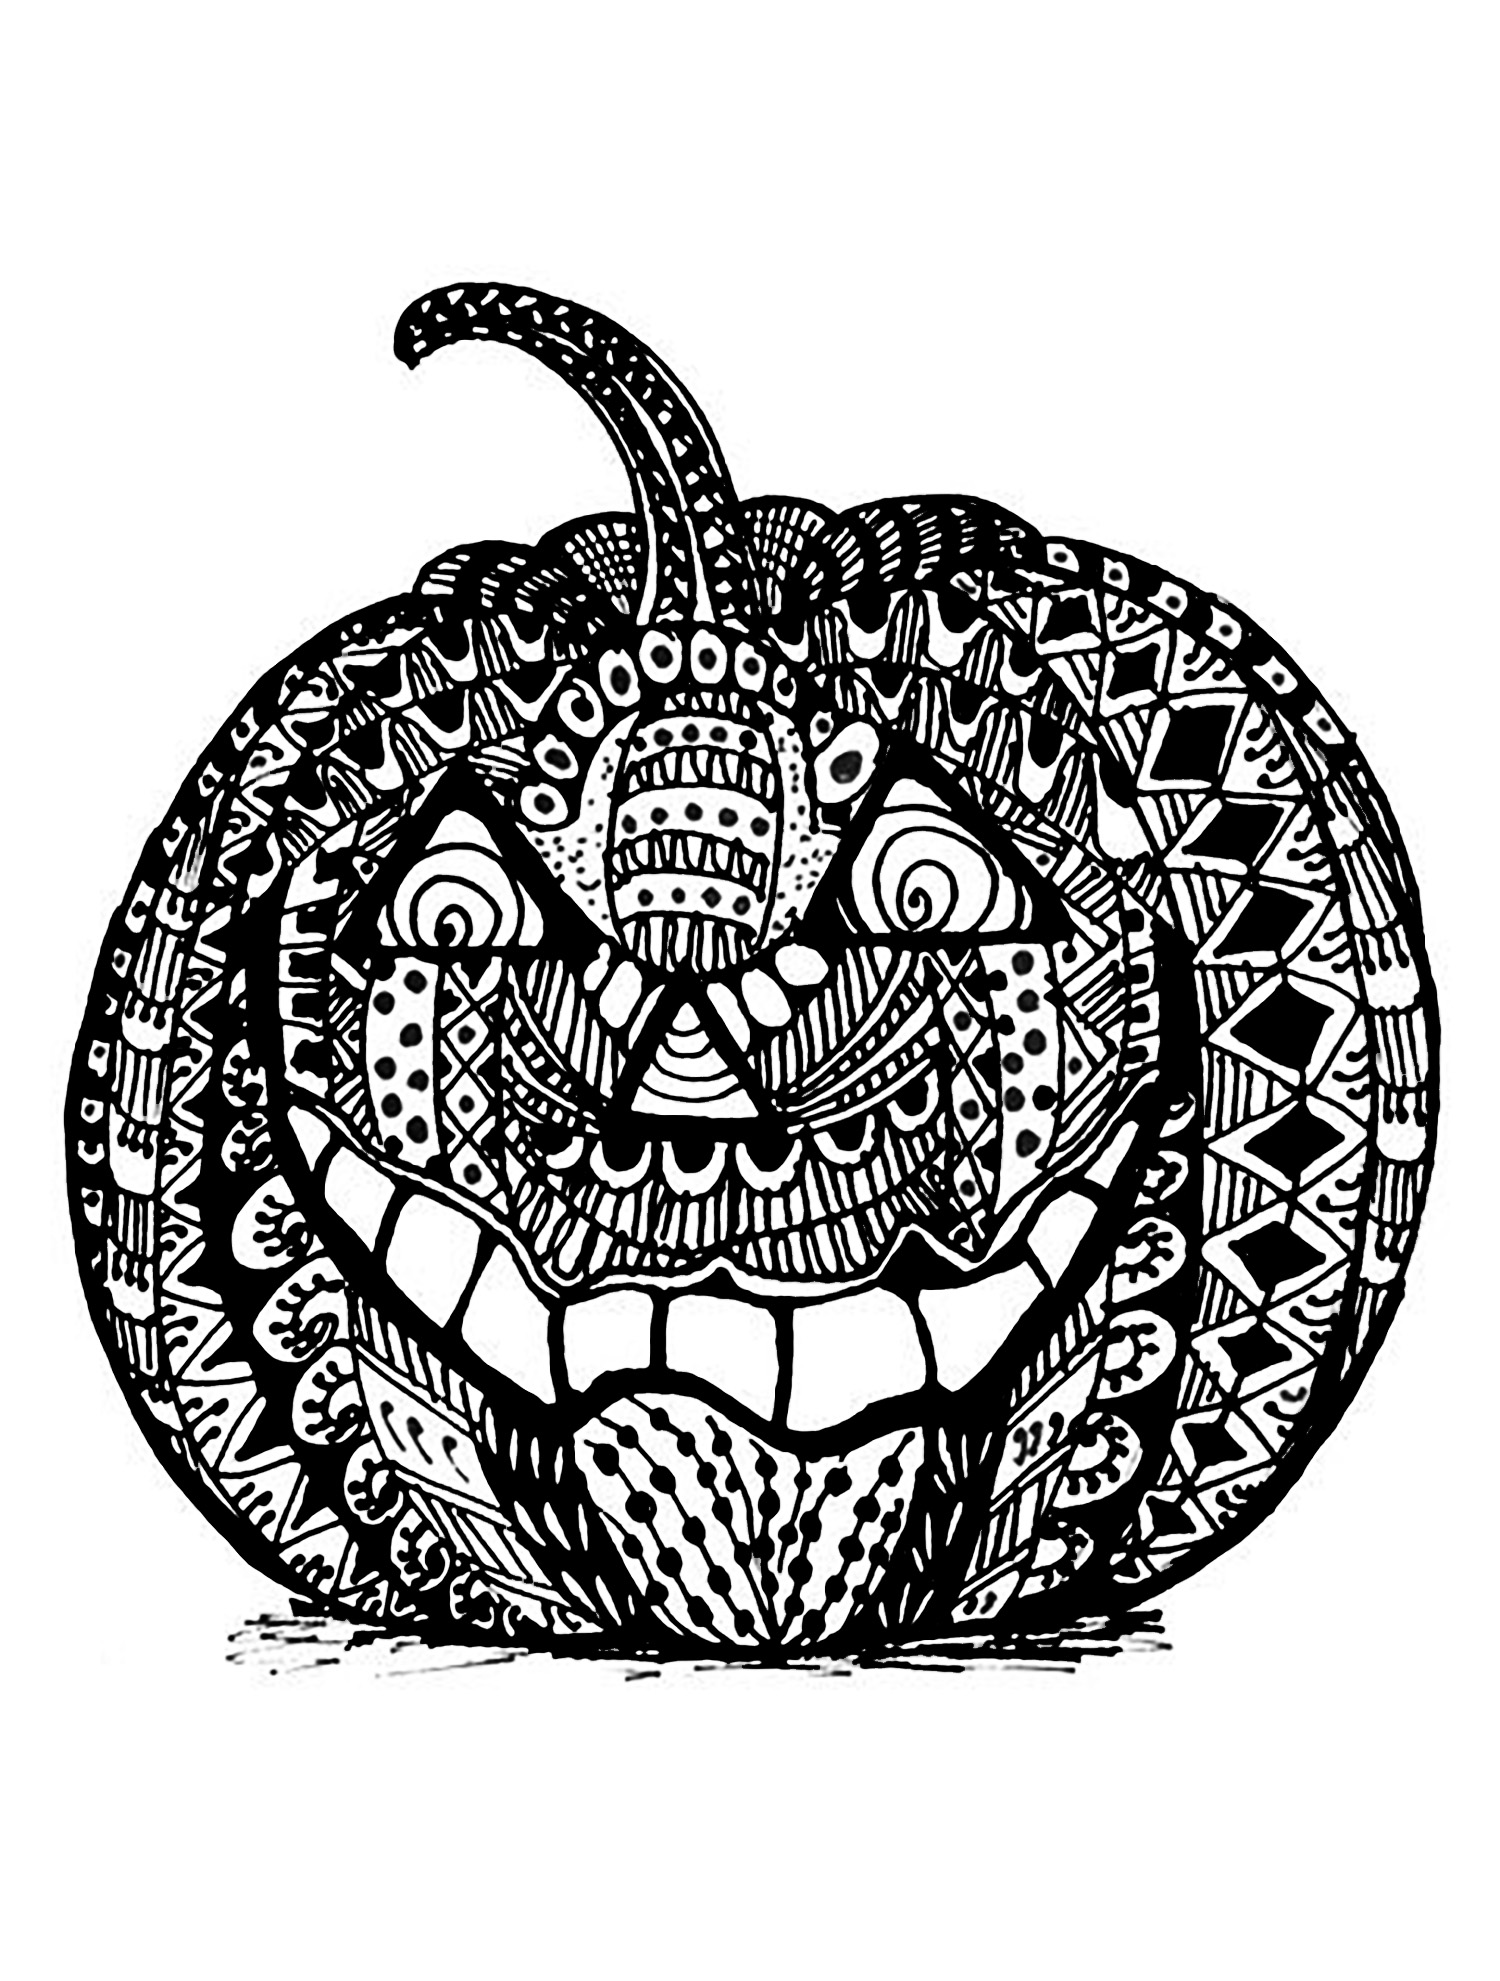 A Zentangle drawing representing a Pumpkin | From the gallery : Events Halloween